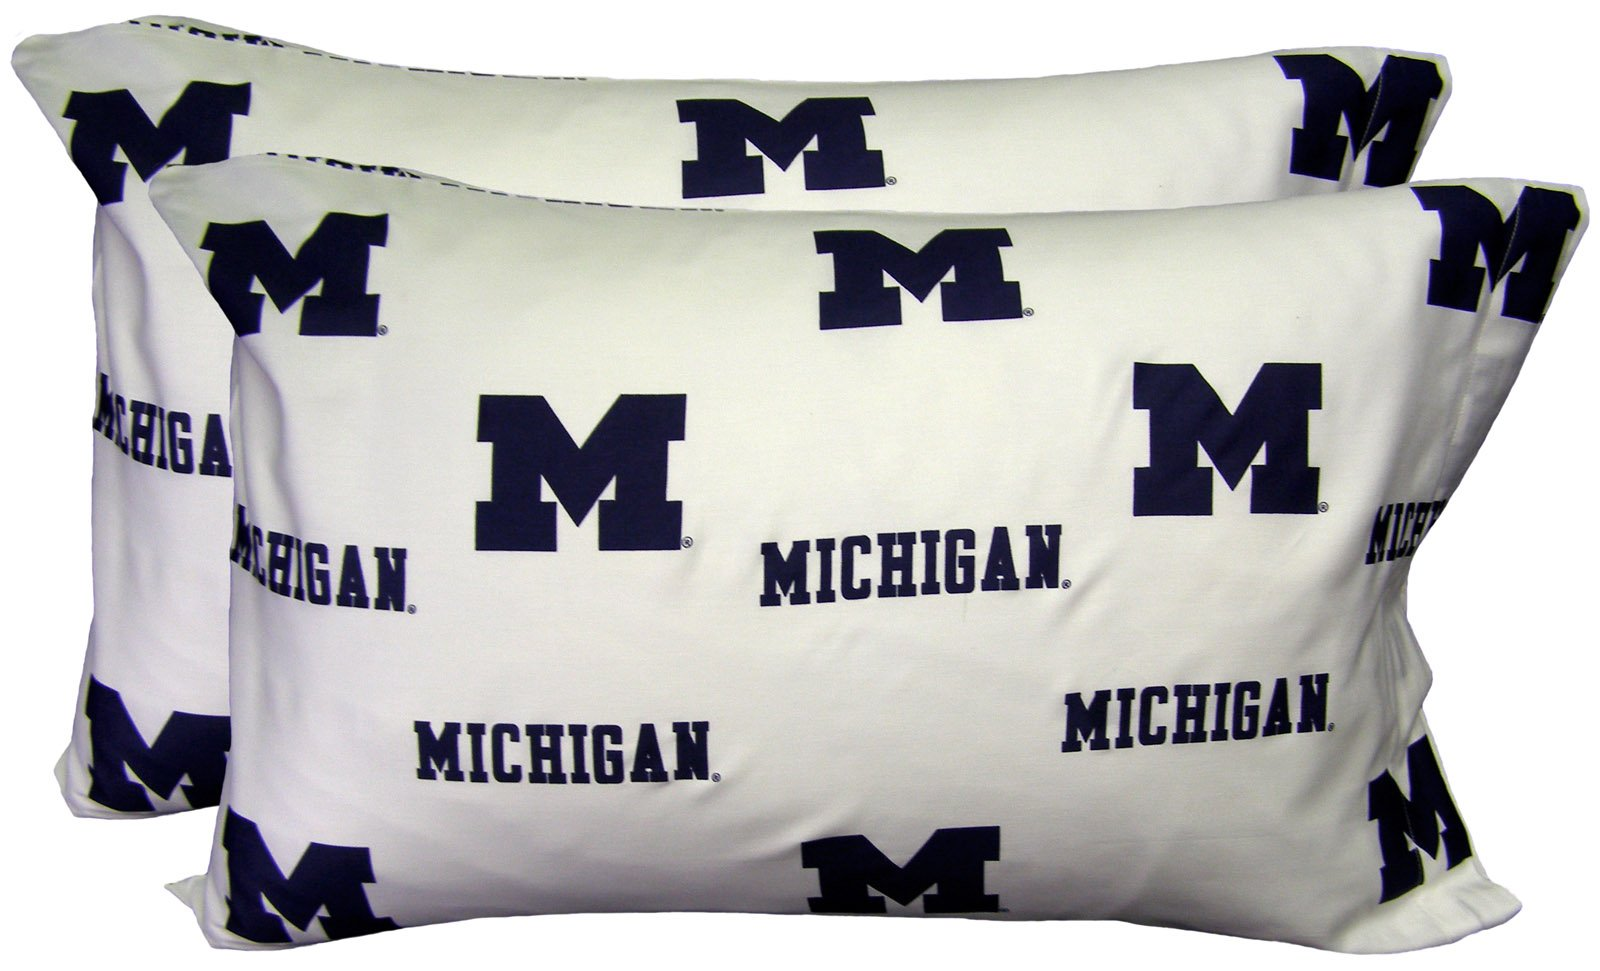 College Covers Michigan Wolverines Pillowcase Pair - White (Includes 2 Standard Pillowcases)